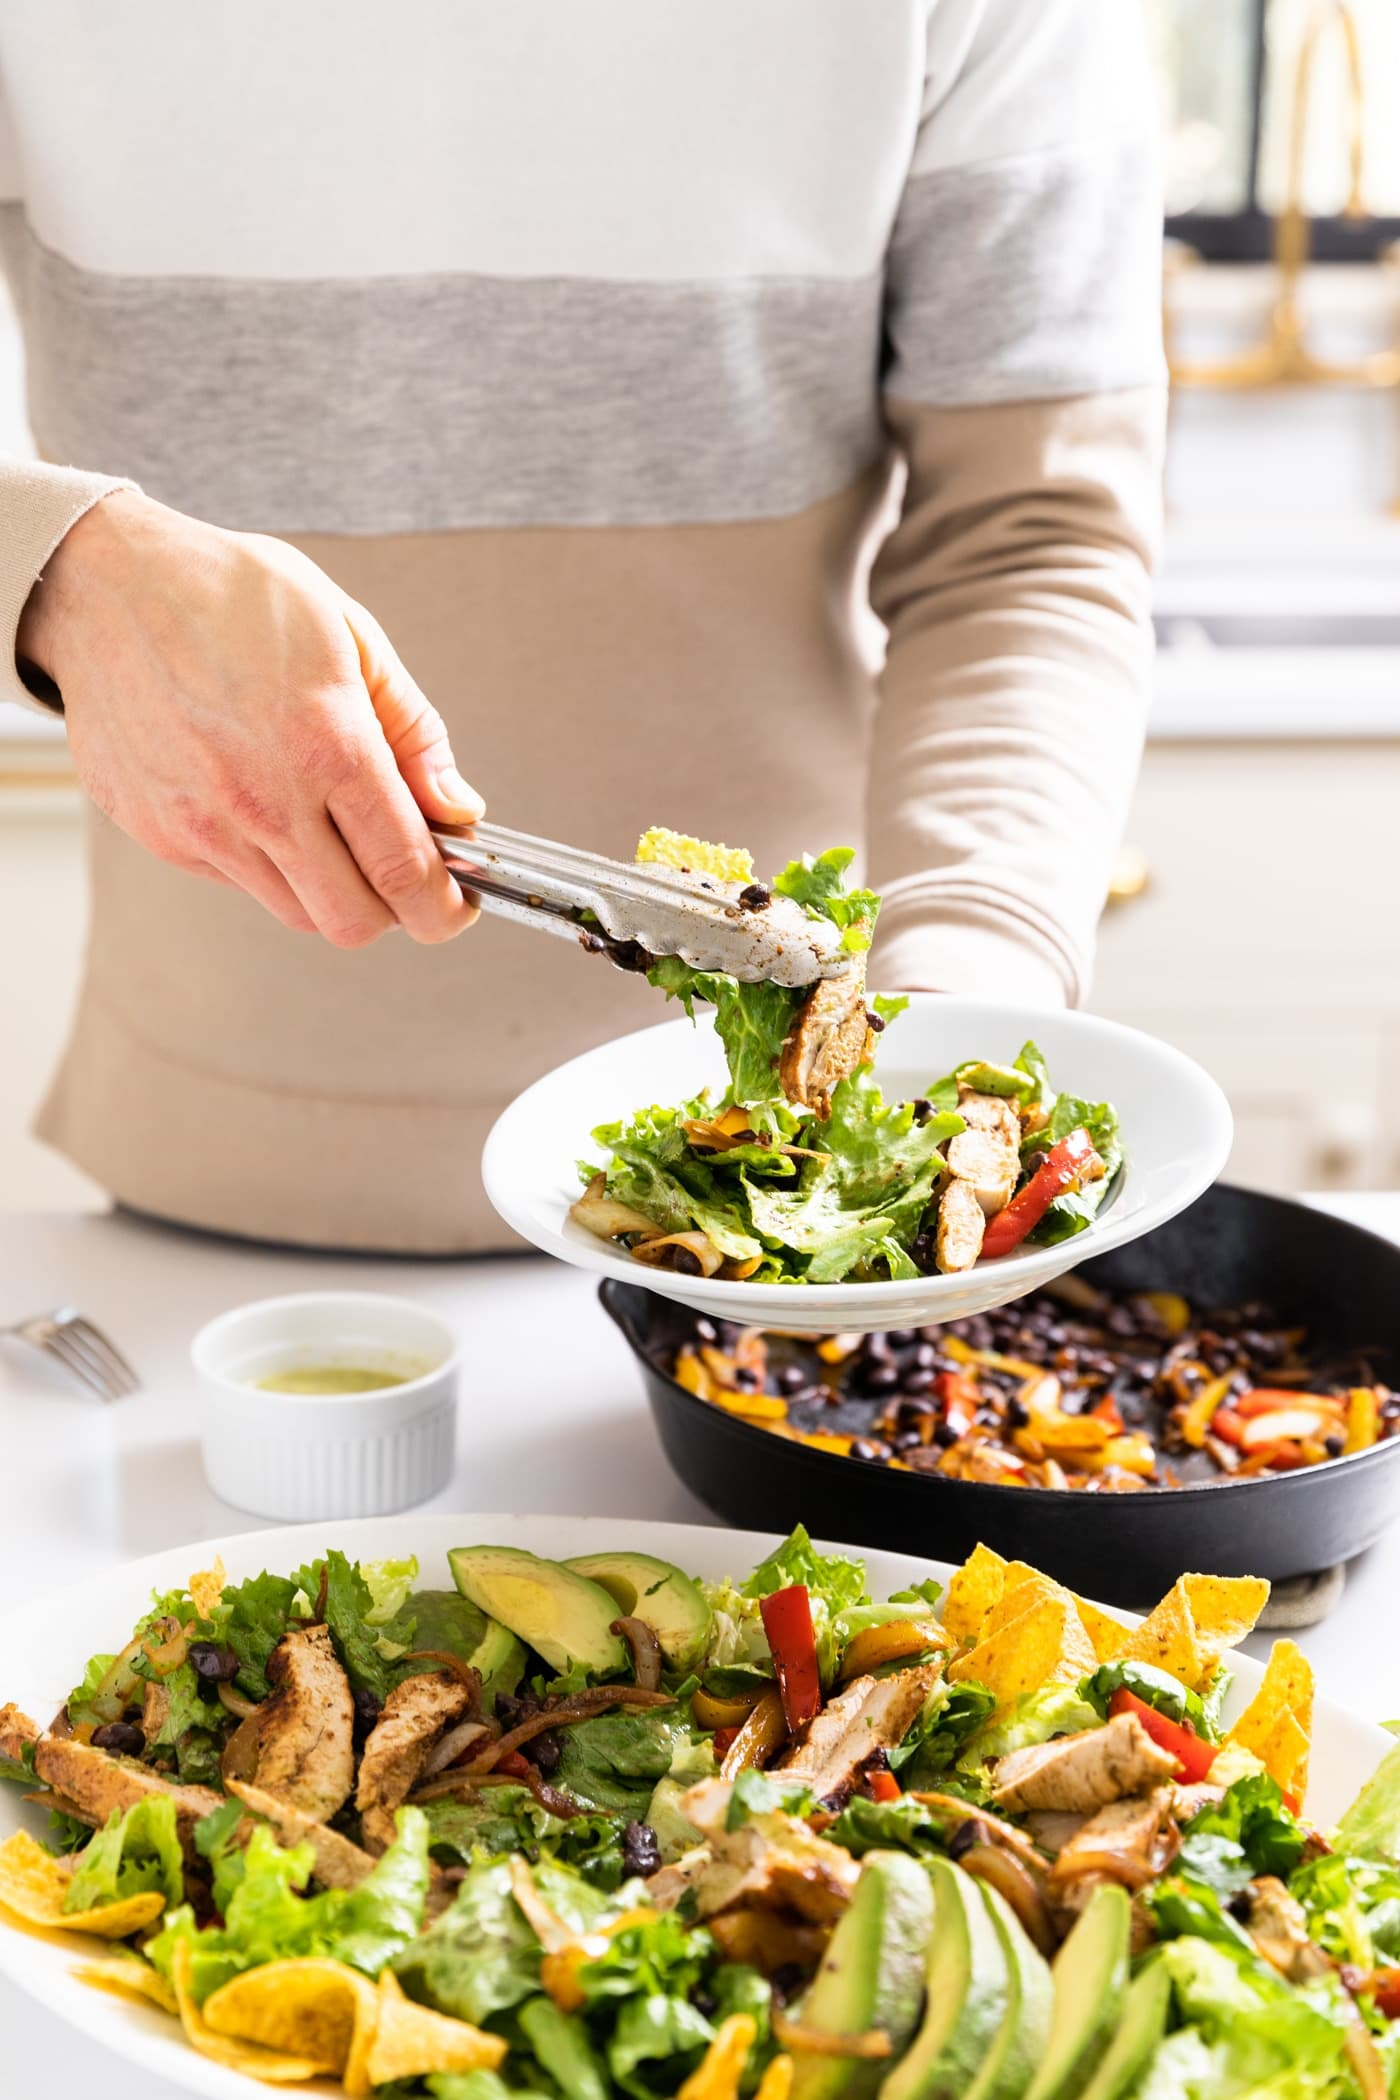 Hand holding tongs putting salad on white serving plate with rest of salad in platter below with black skillet filled with peppers in background